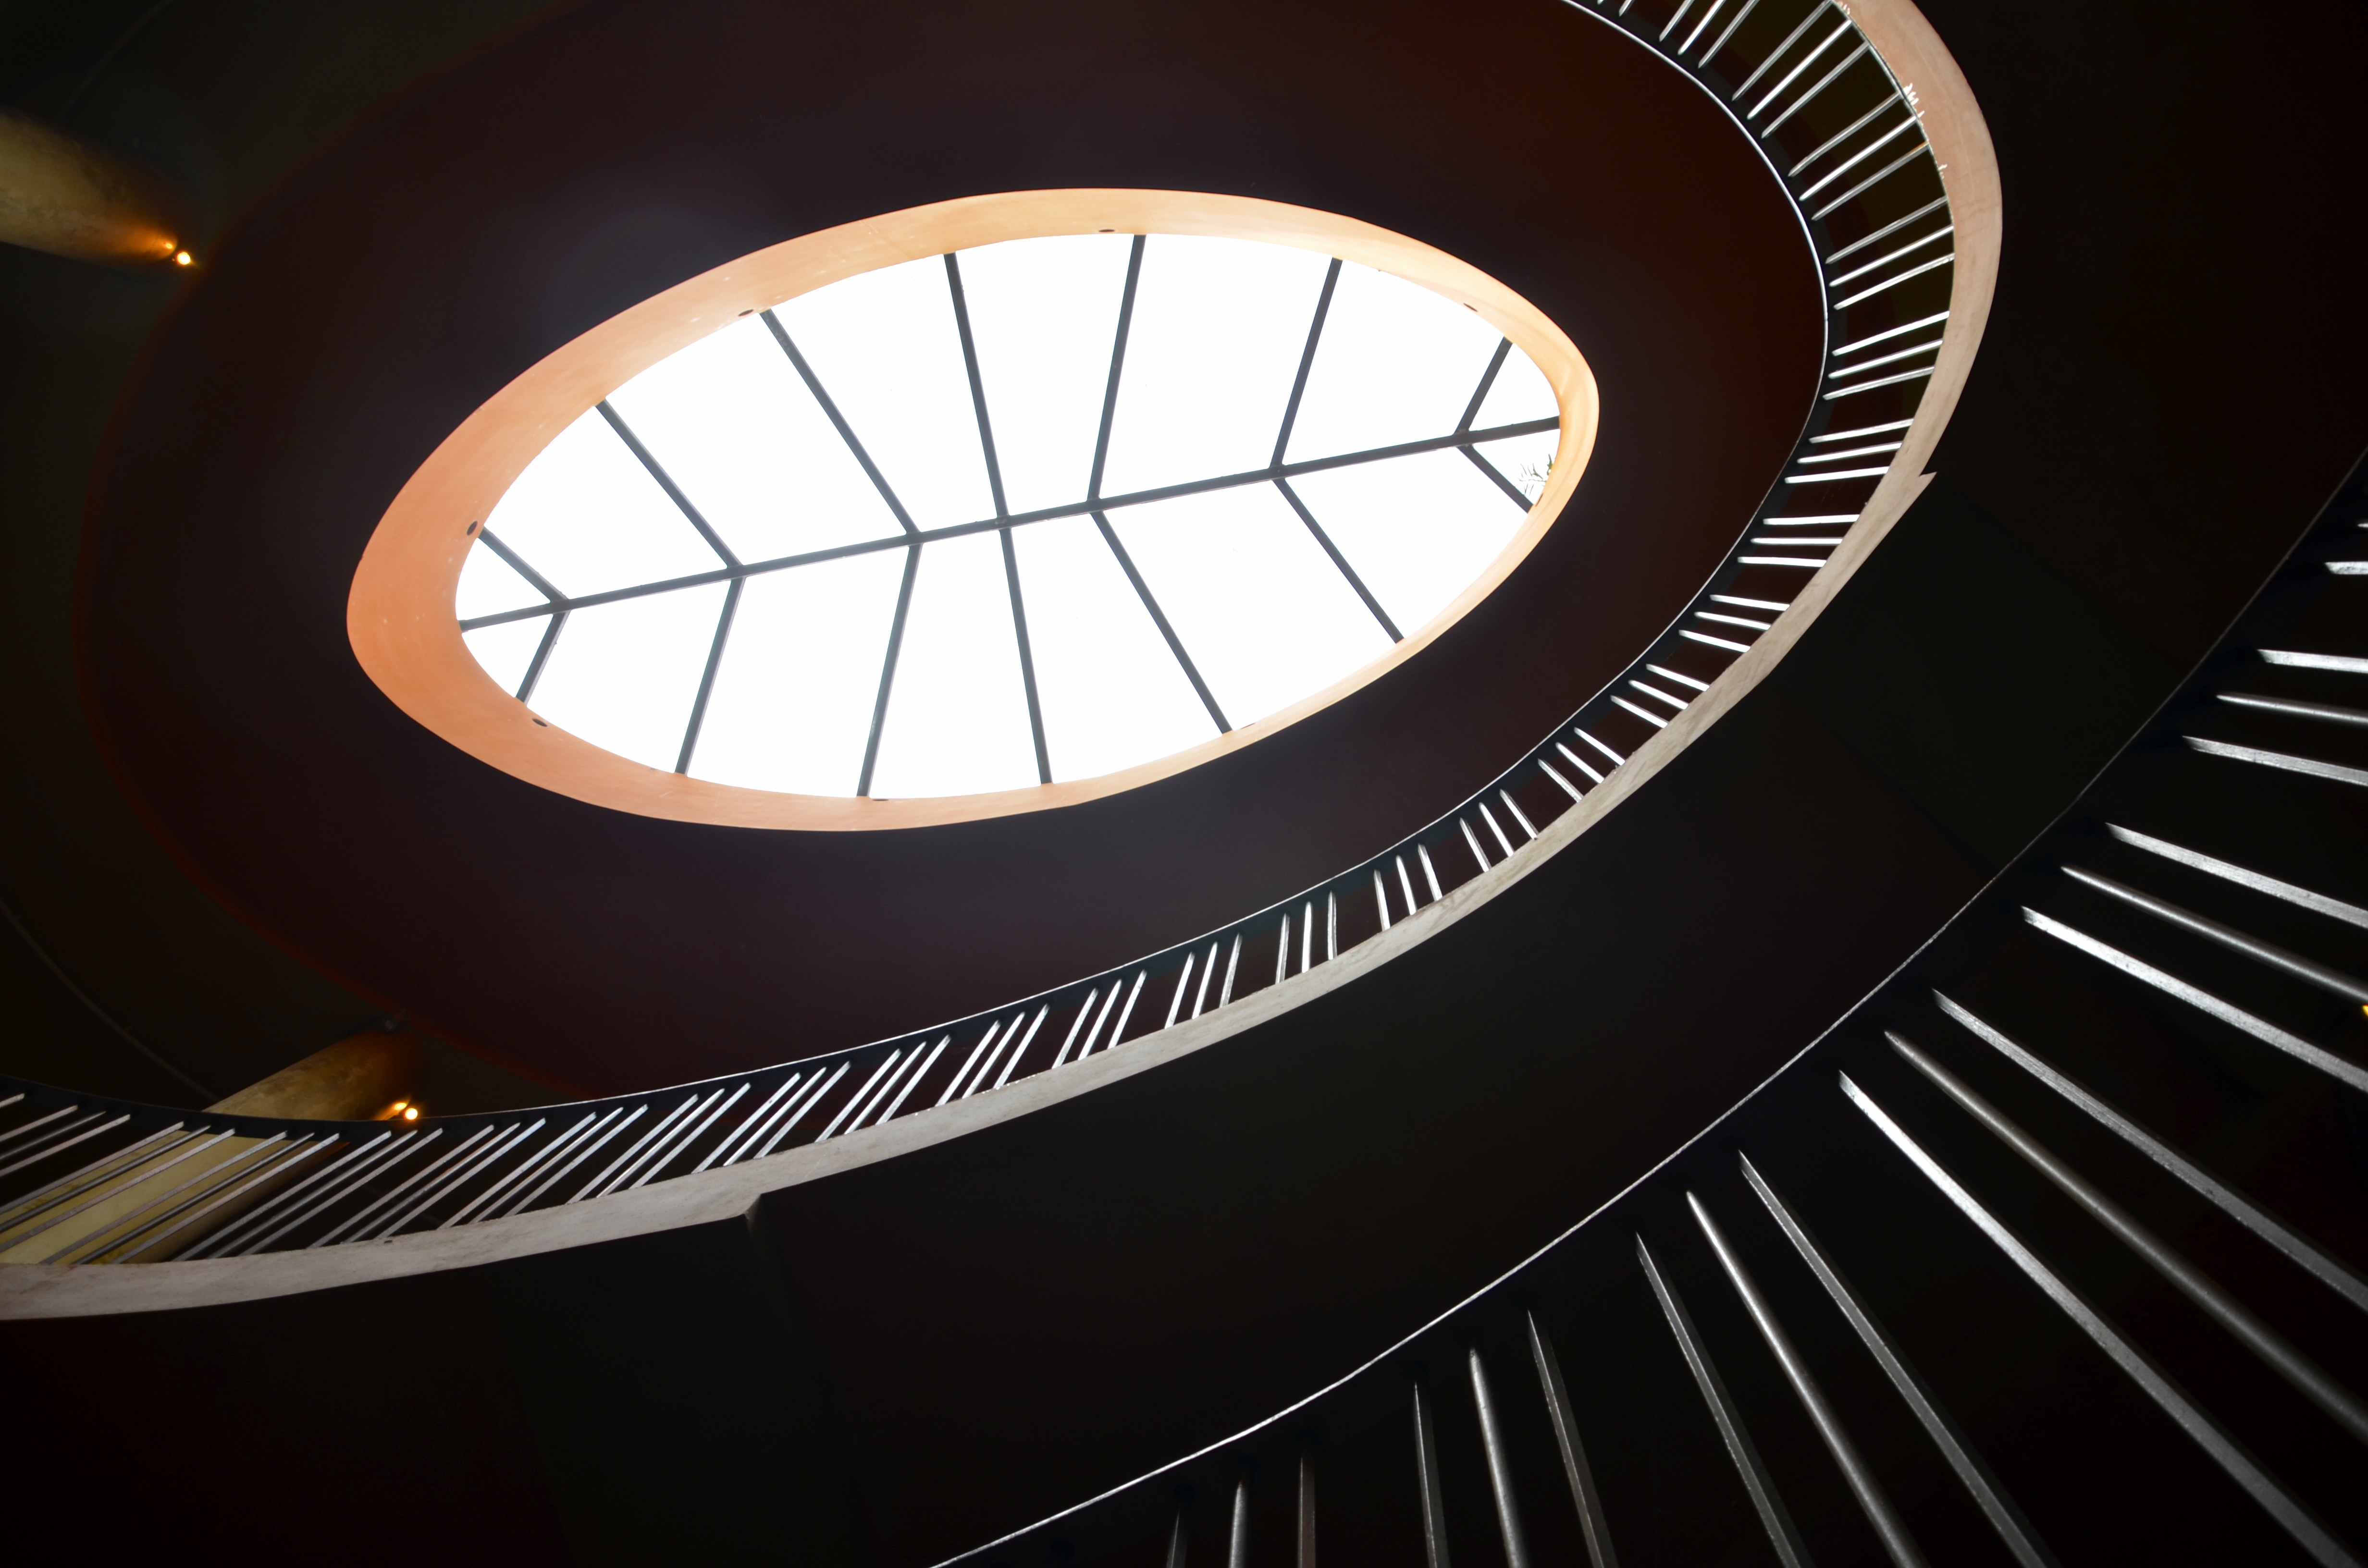 grey spiraling staircase in clear glass center ceiling building